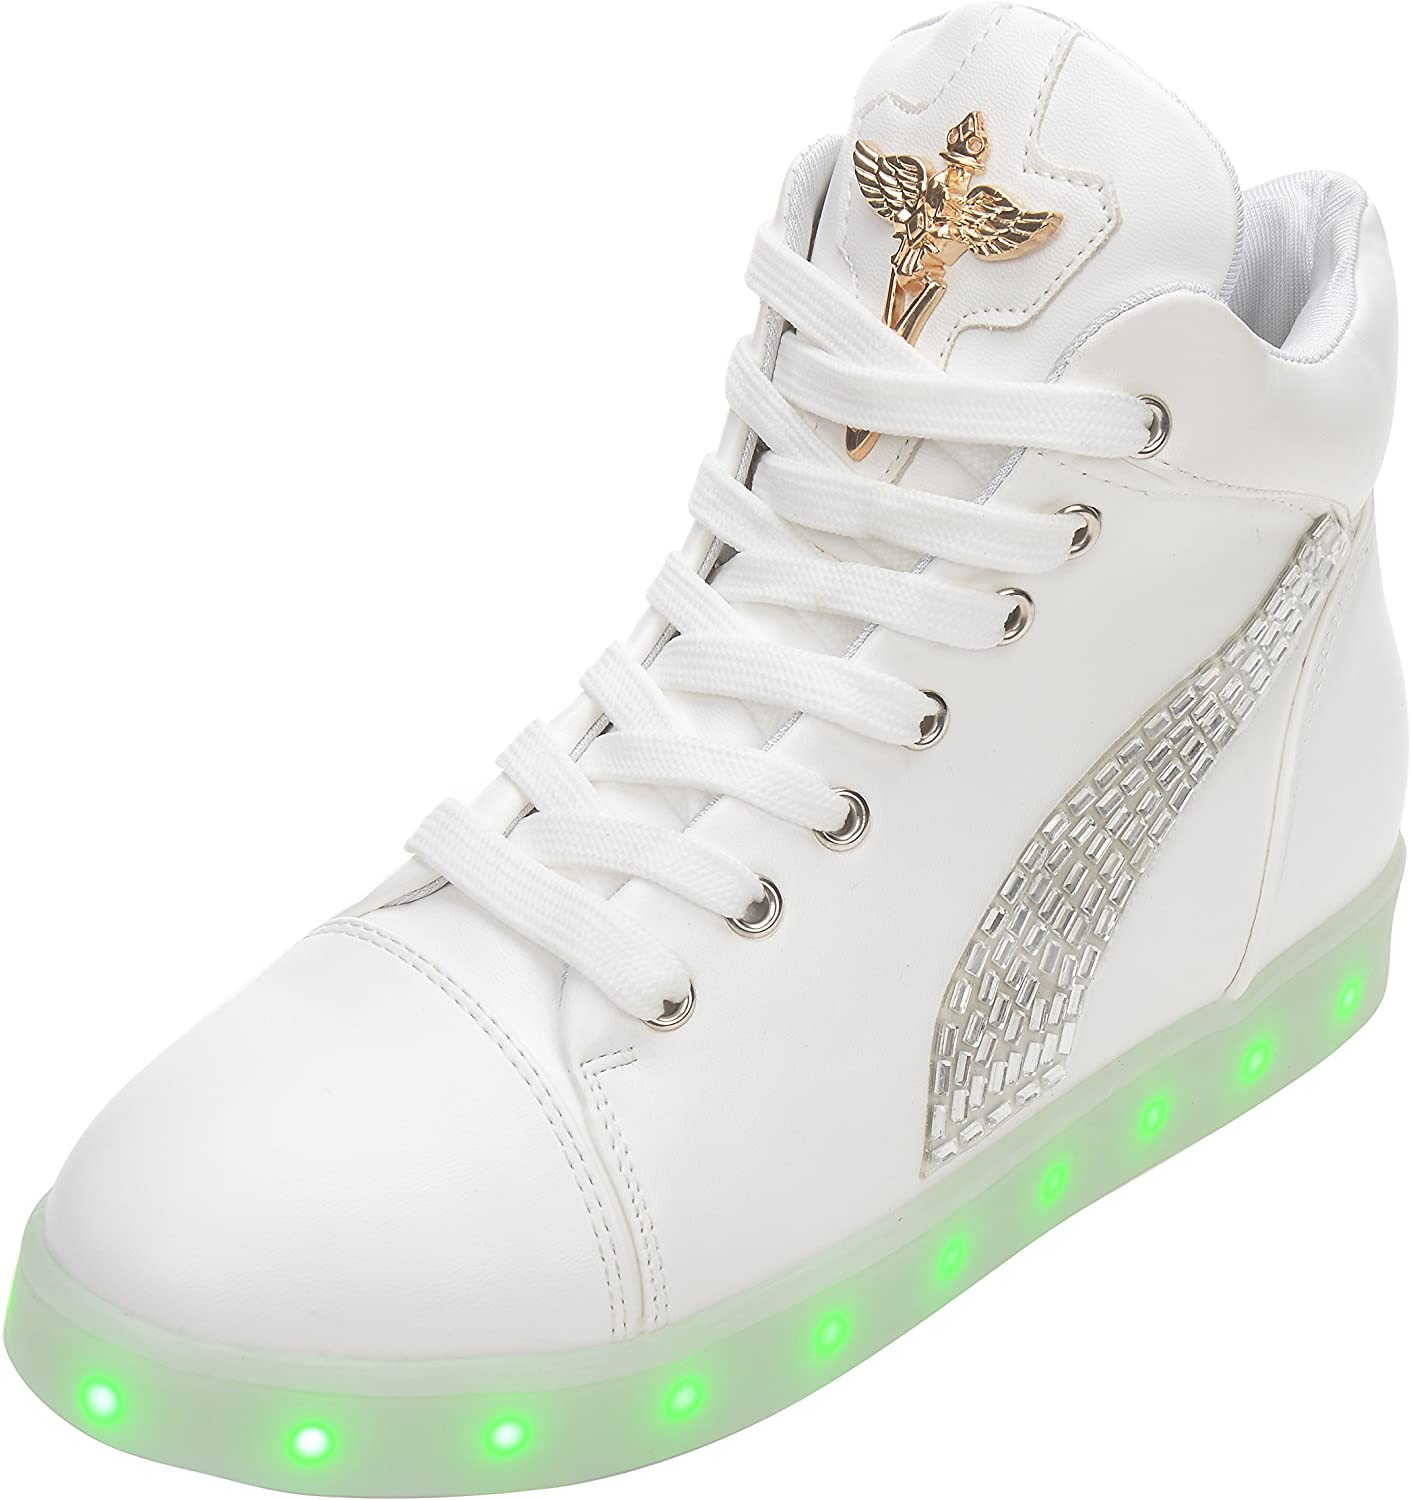 BININBOX Women's Fashion LED Light USB Charge Diamante High Top Wedge shoes White